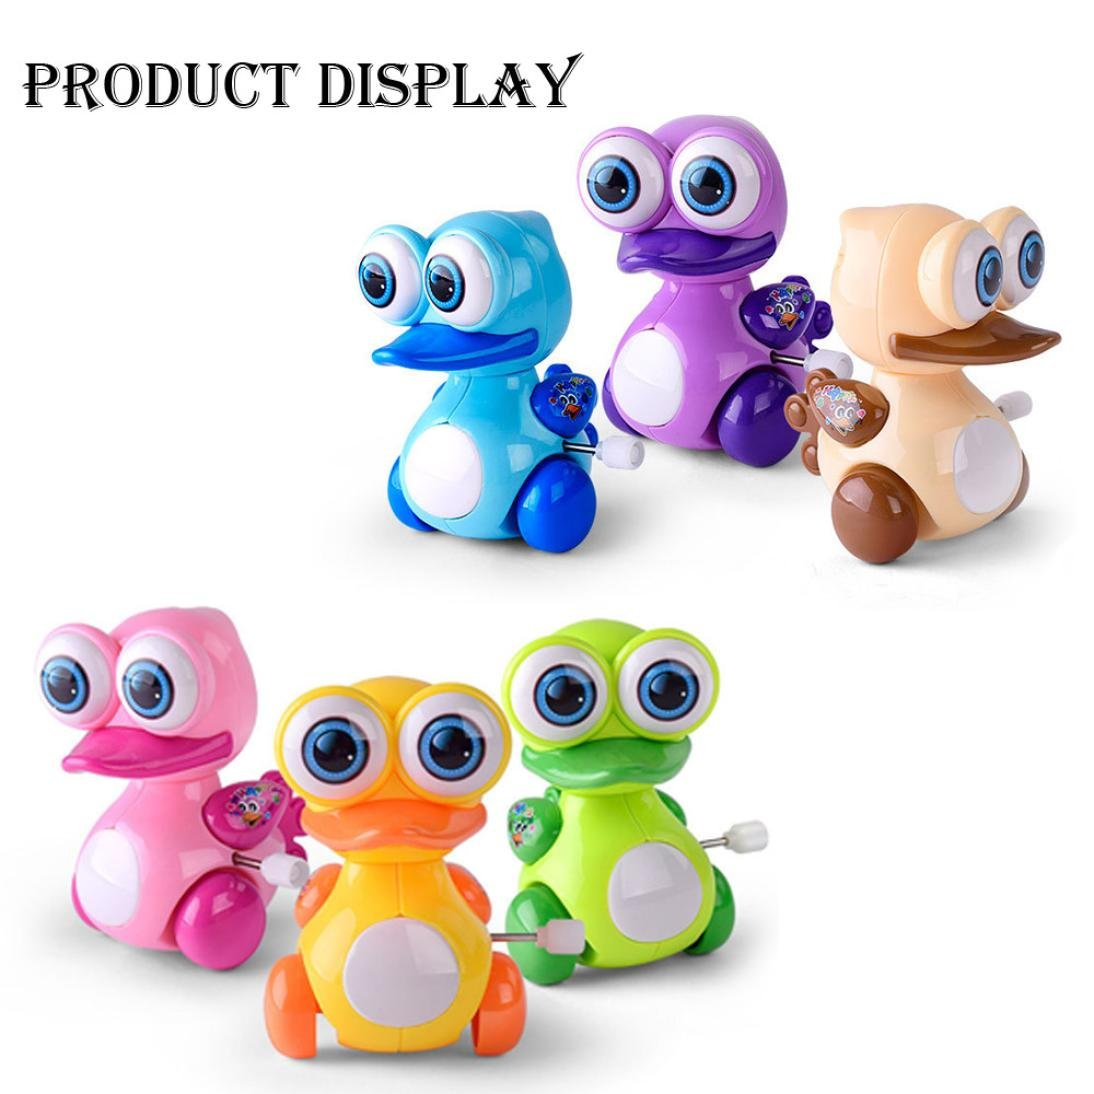 Gbell Clockwork Toy Baby Cute Duck,Dinosaur,Doll Model Toy Gift for Kids (A)